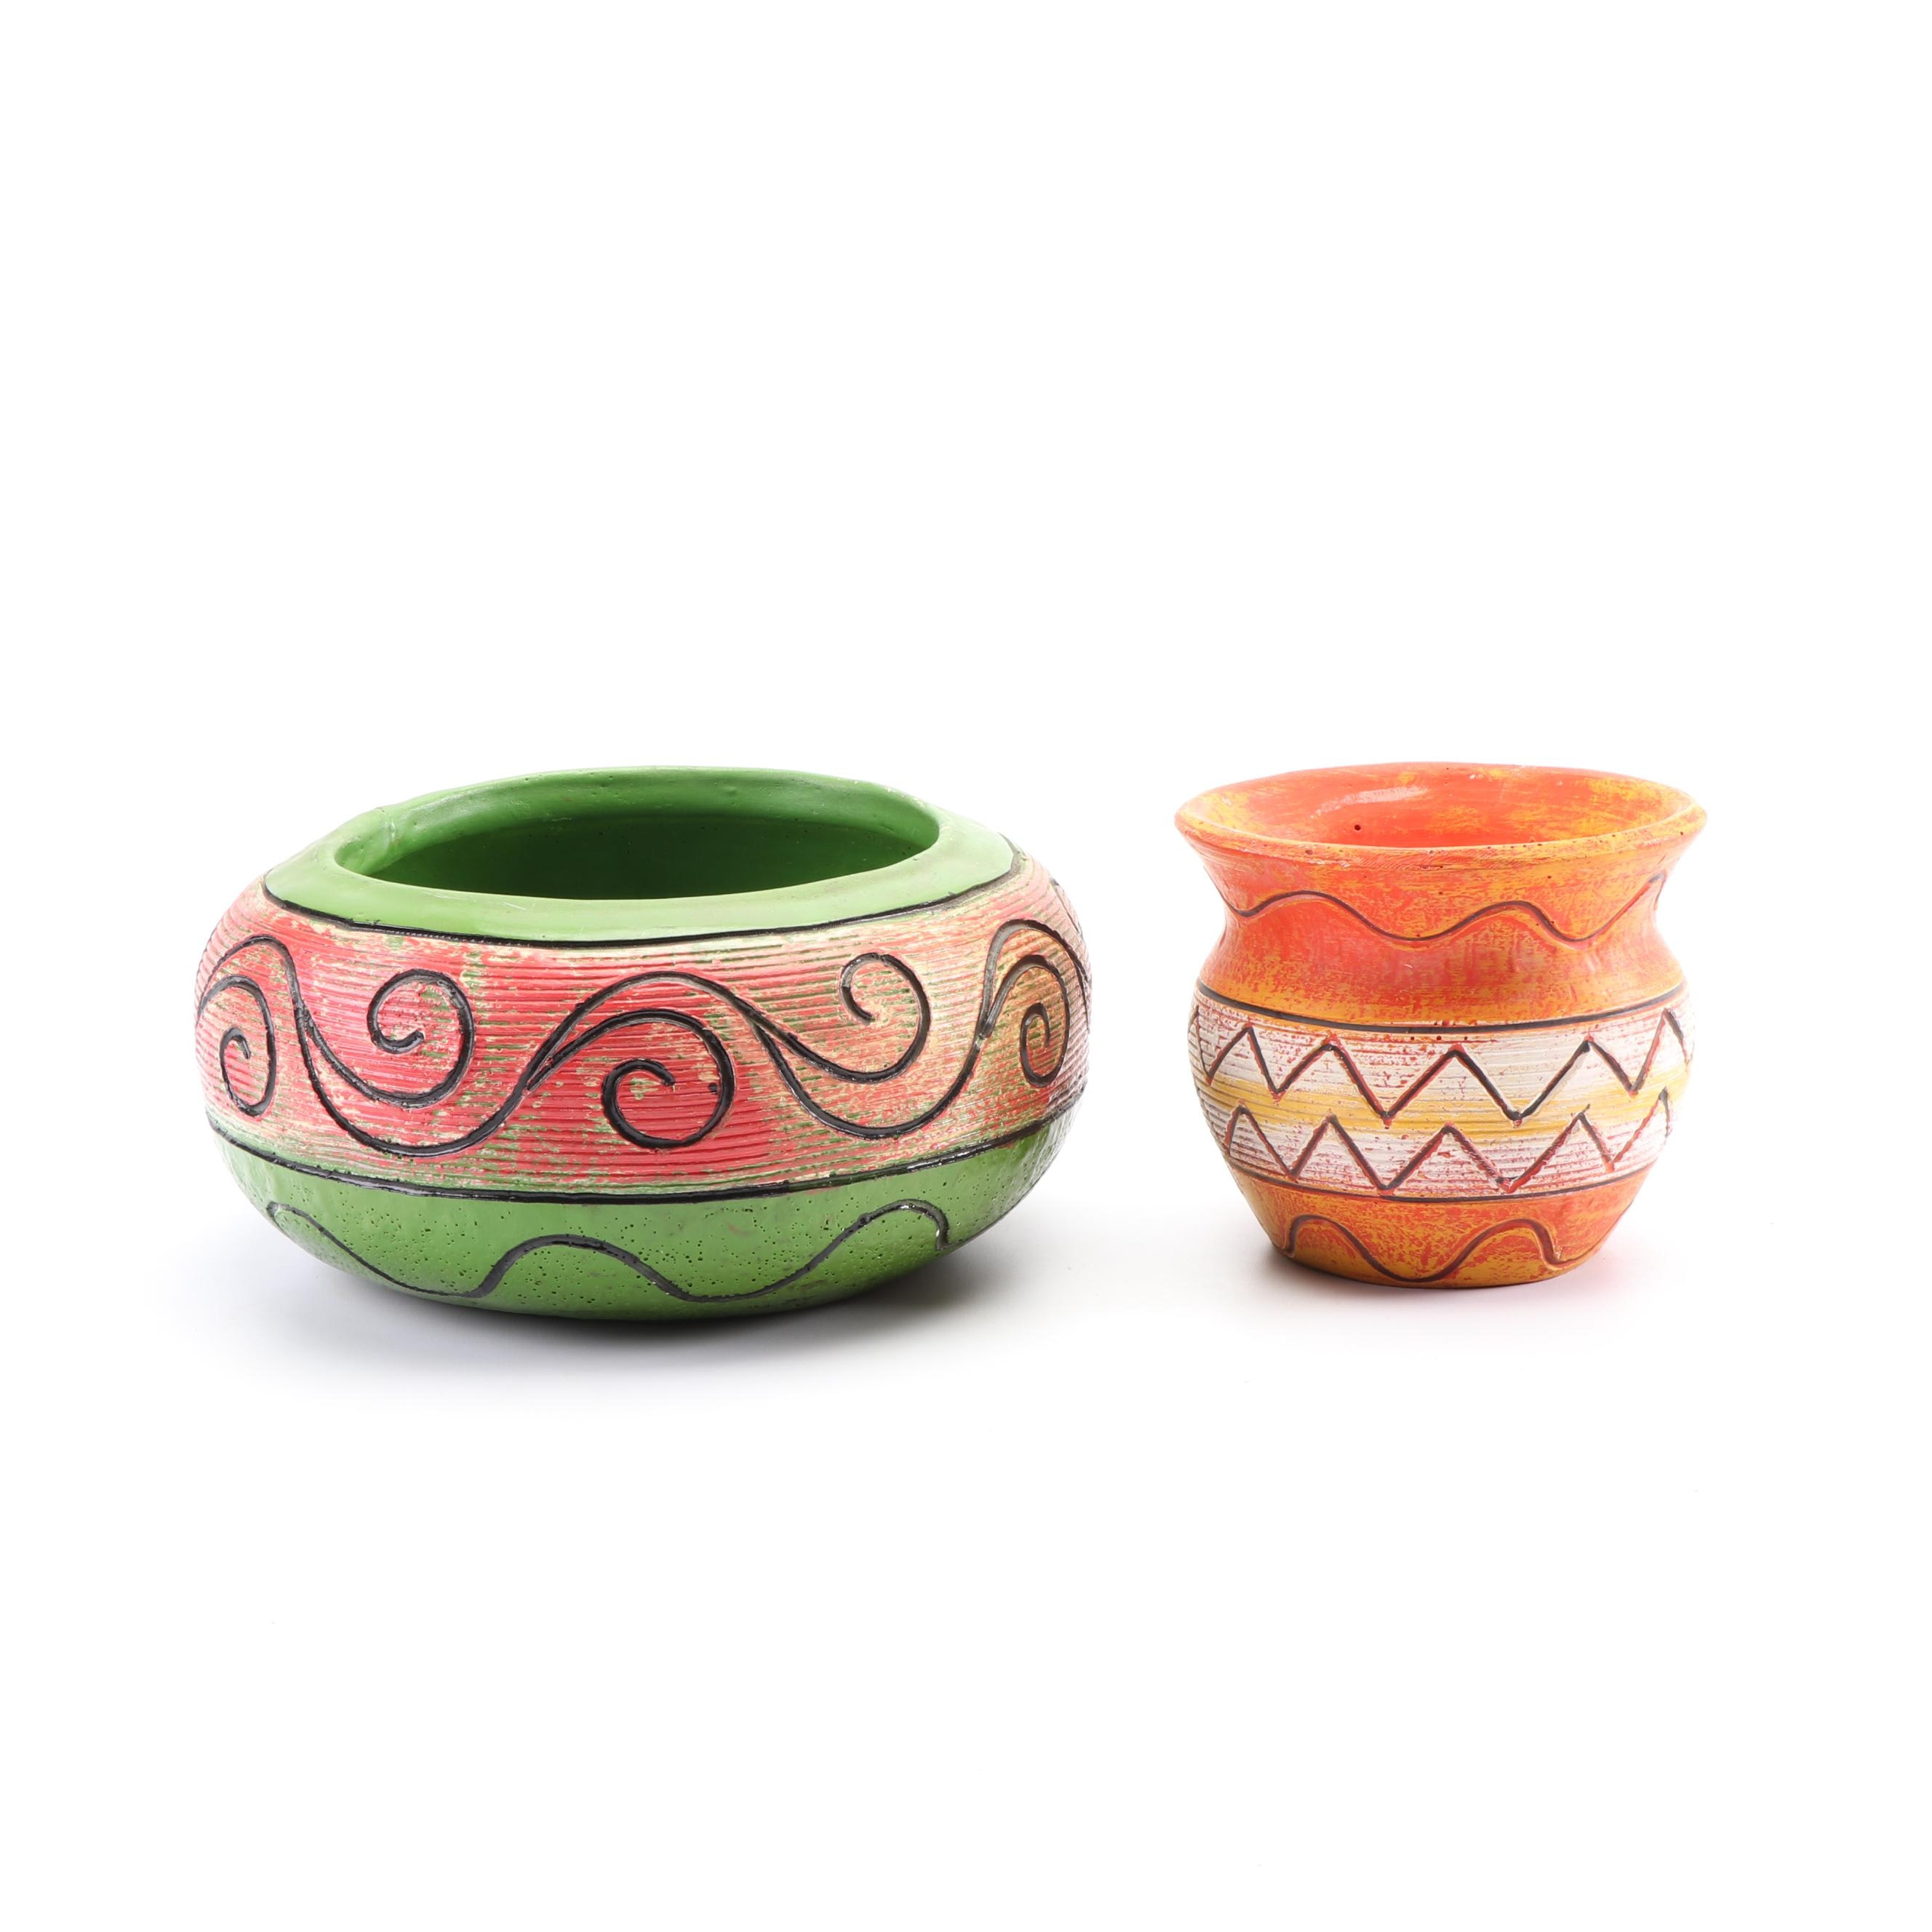 North American Hand-Painted Ceramic and Plaster Planters